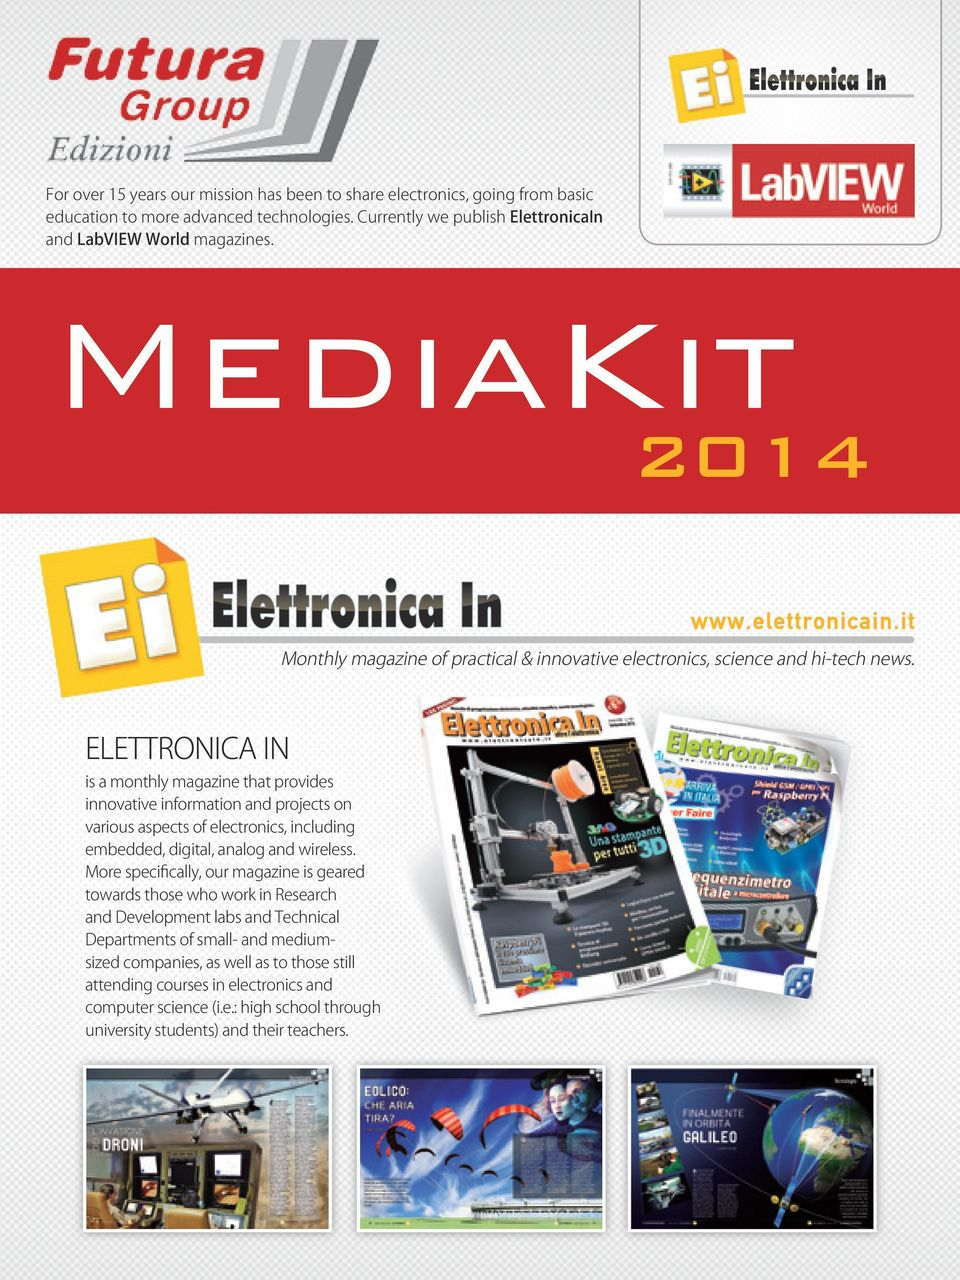 ELETTRONICA IN is a monthly magazine that provides innovative information and projects on various aspects of electronics, including embedded, digital, analog and wireless.